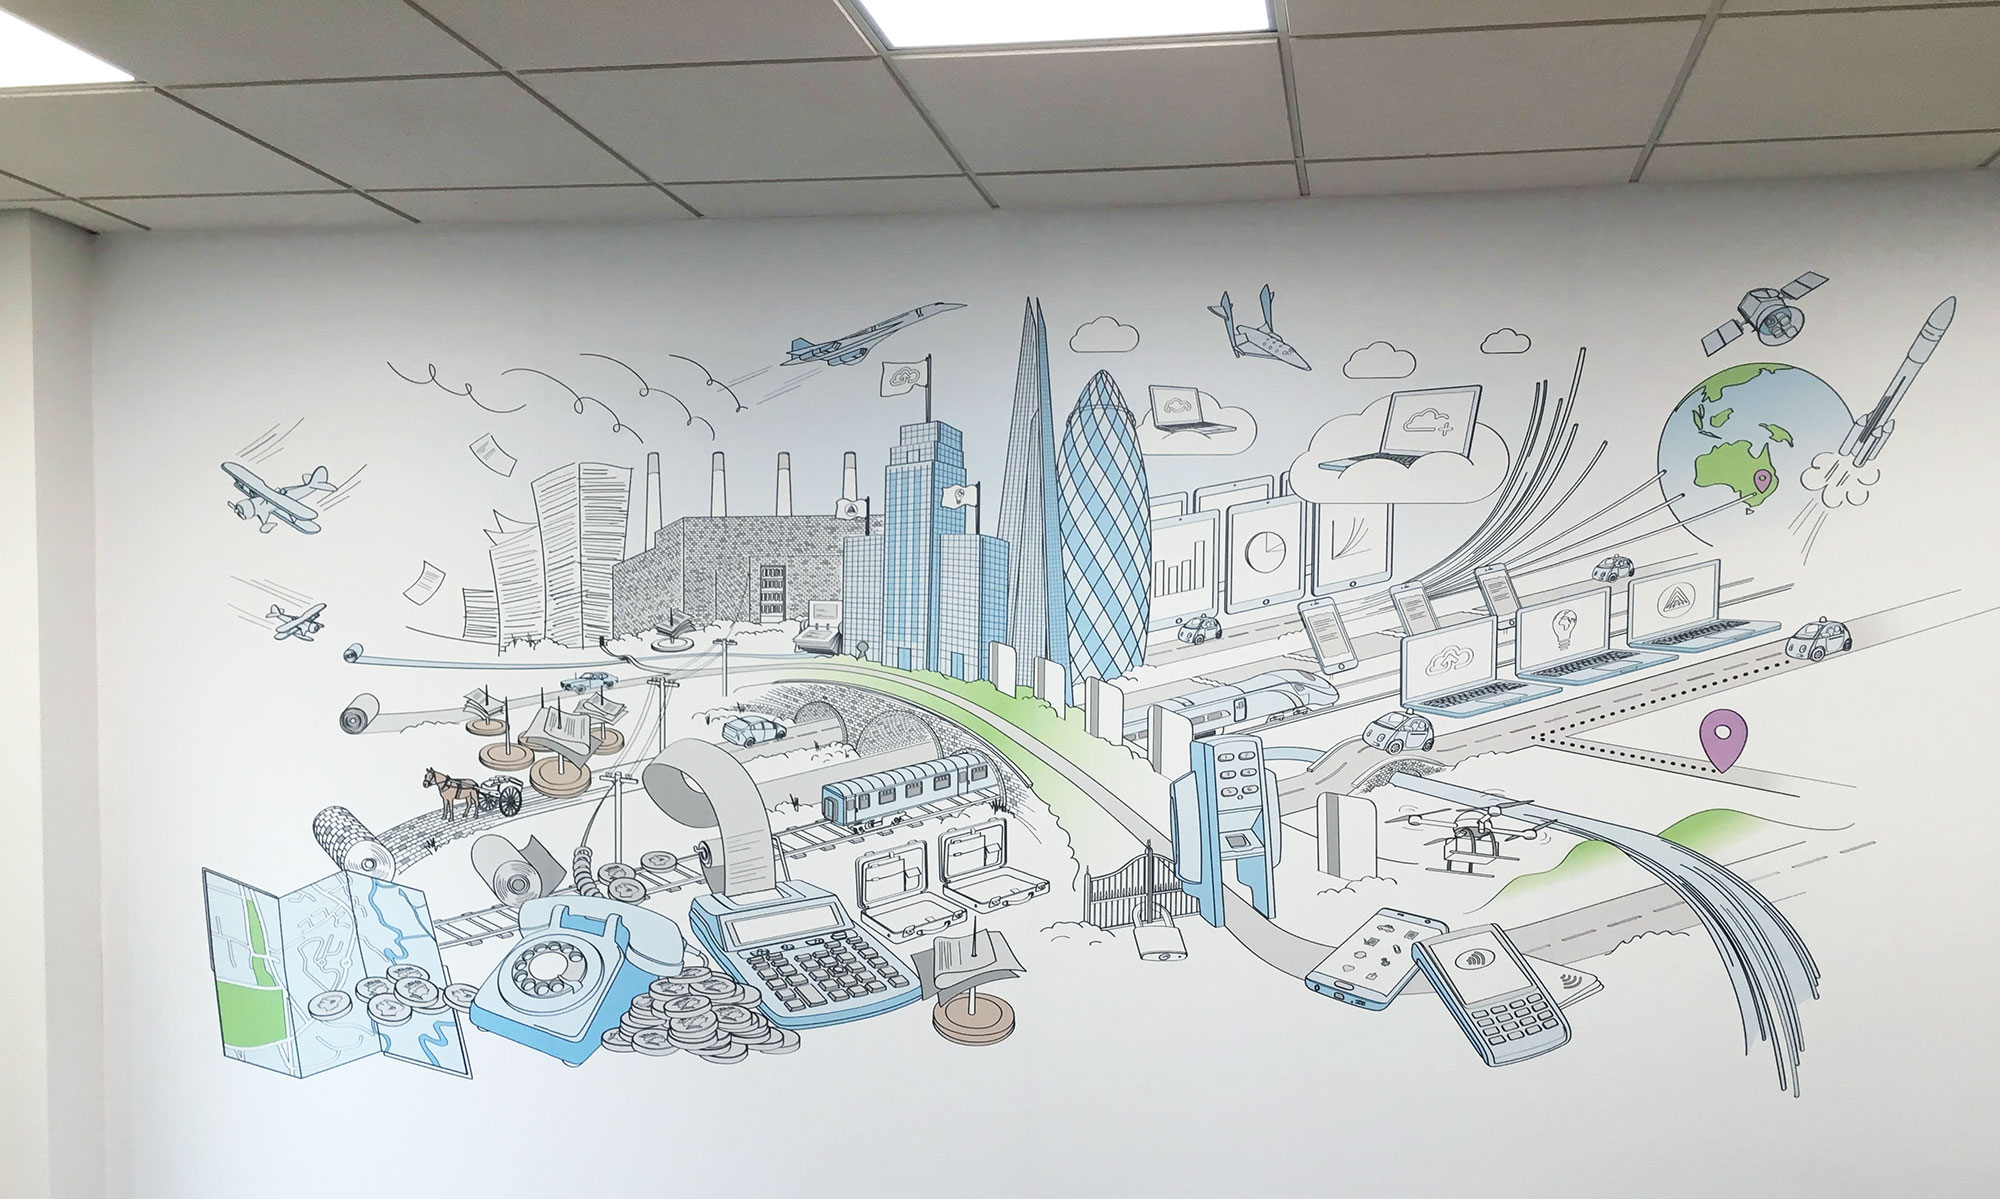 Webexpenses wall mural illustration